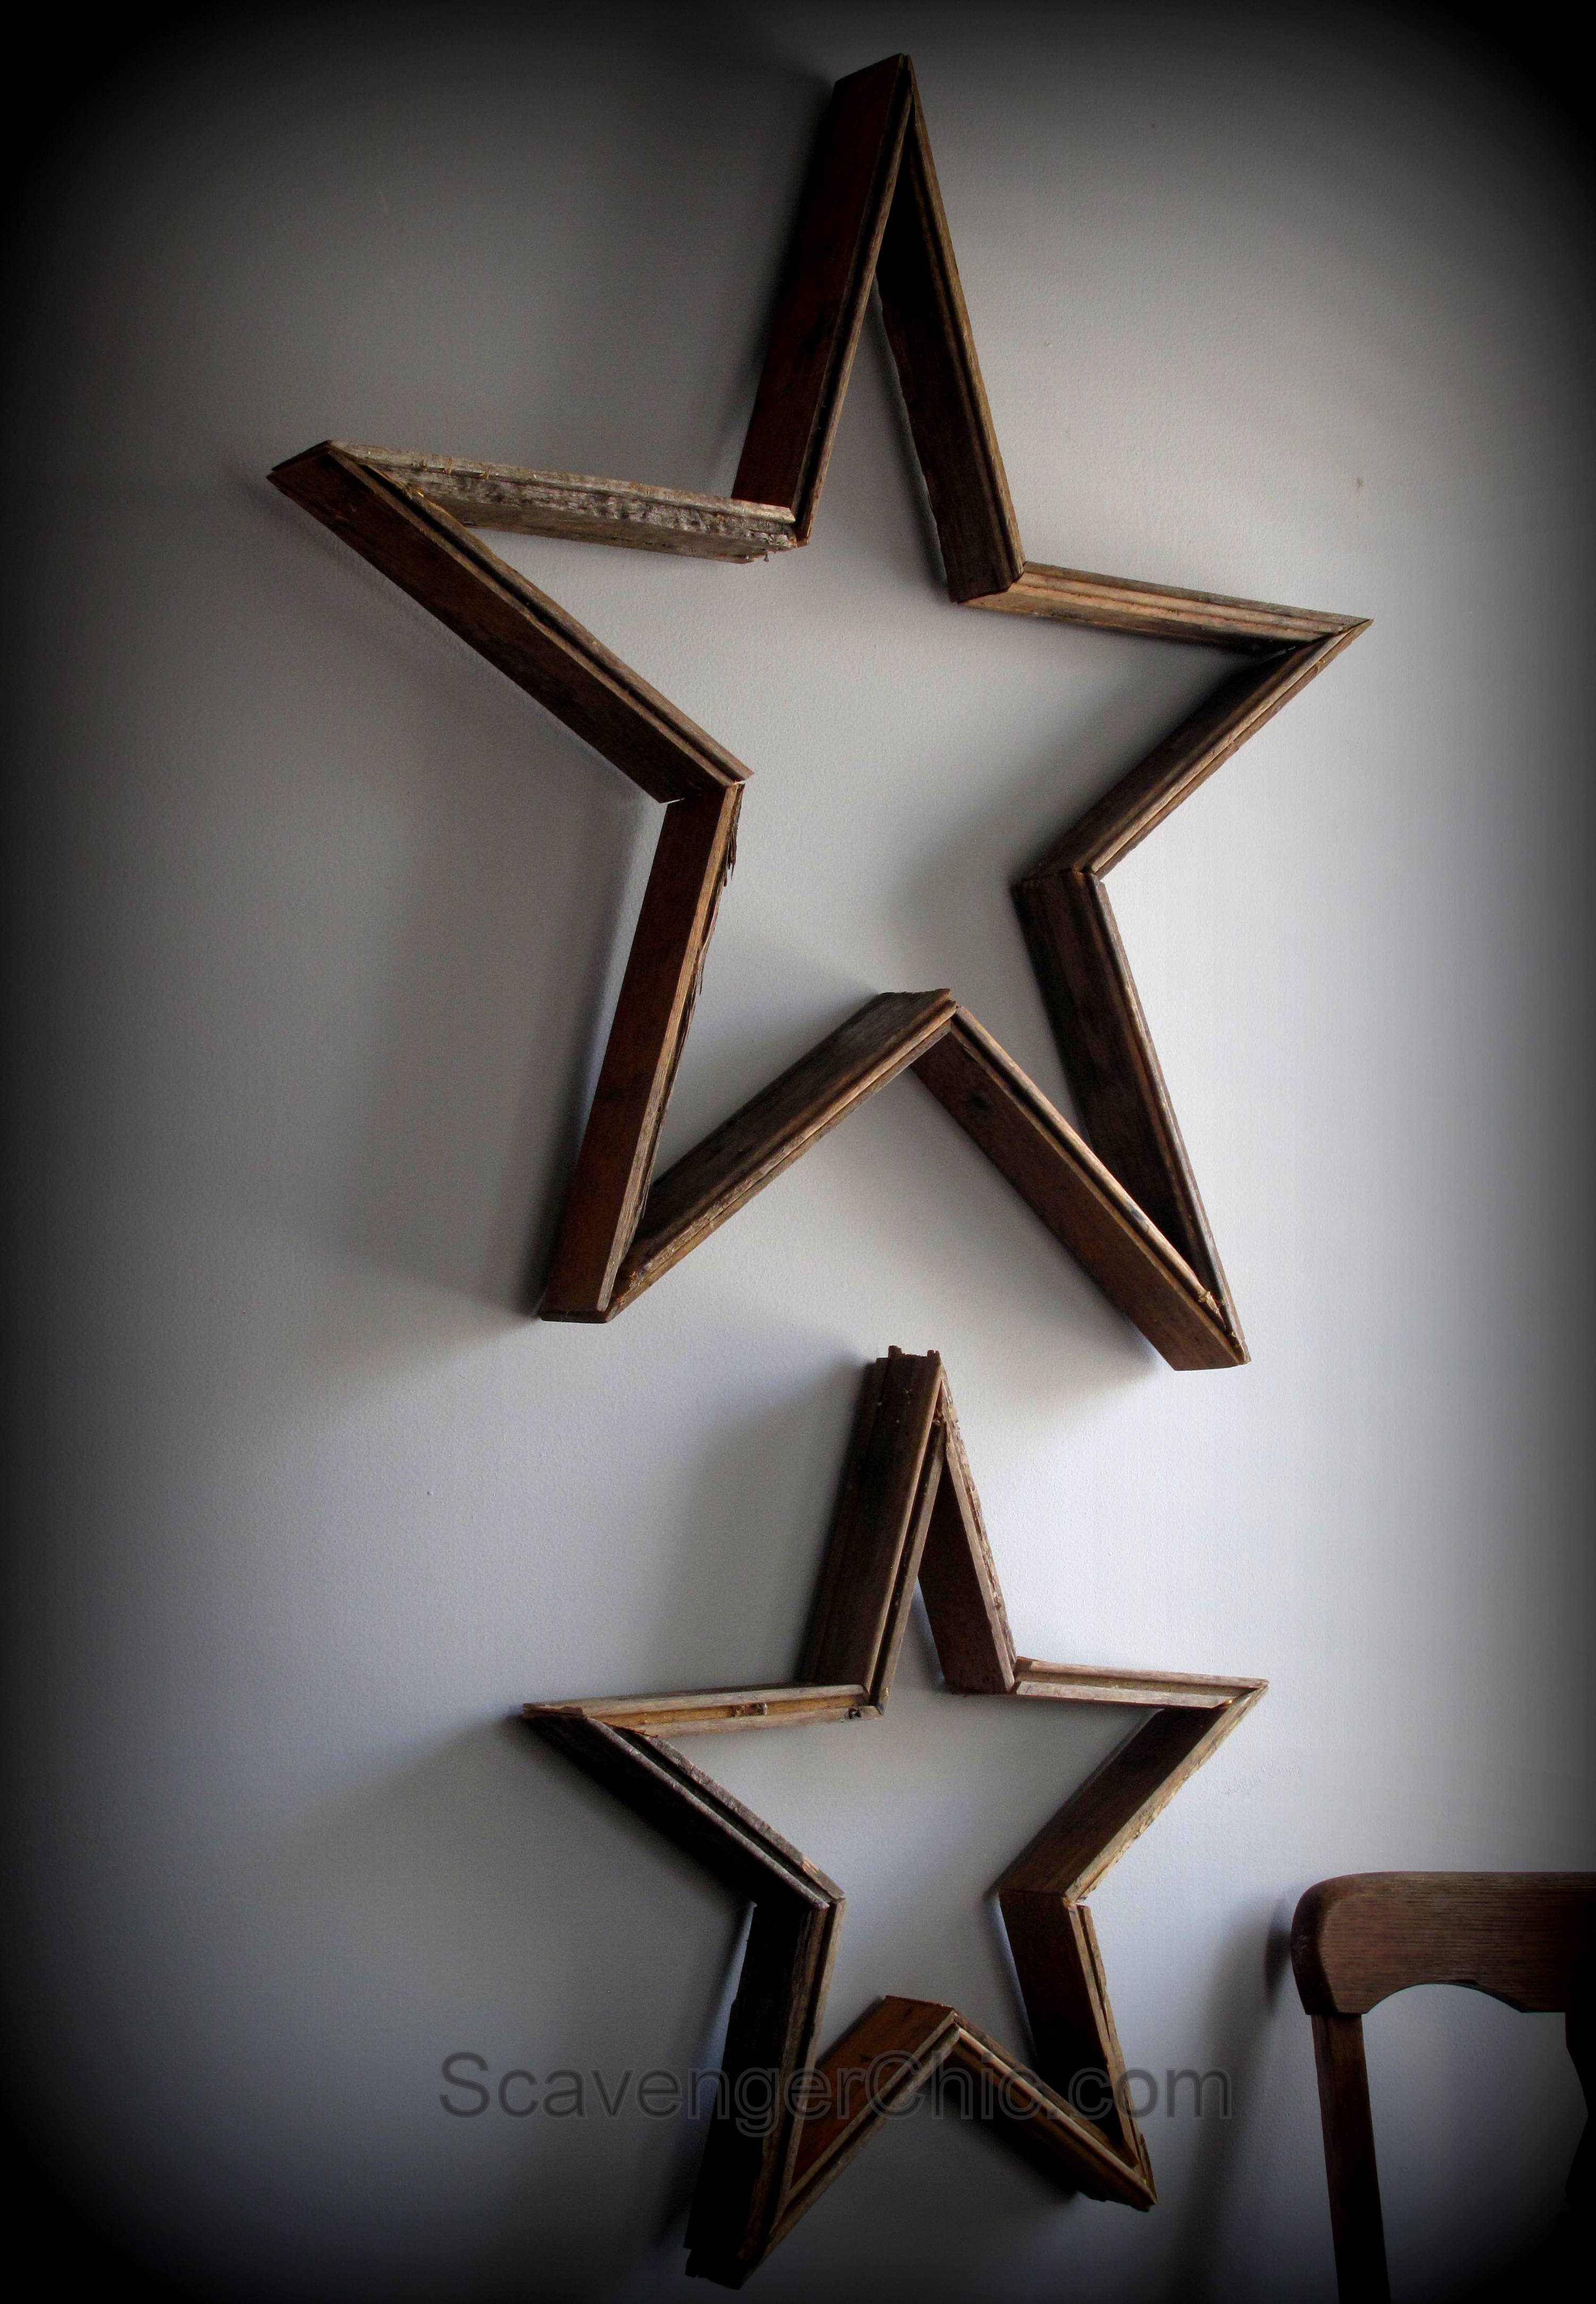 As Soon I Restock My Pallet Wood Am Sooo Going To Make A Star Until Then Think Just Saved 129